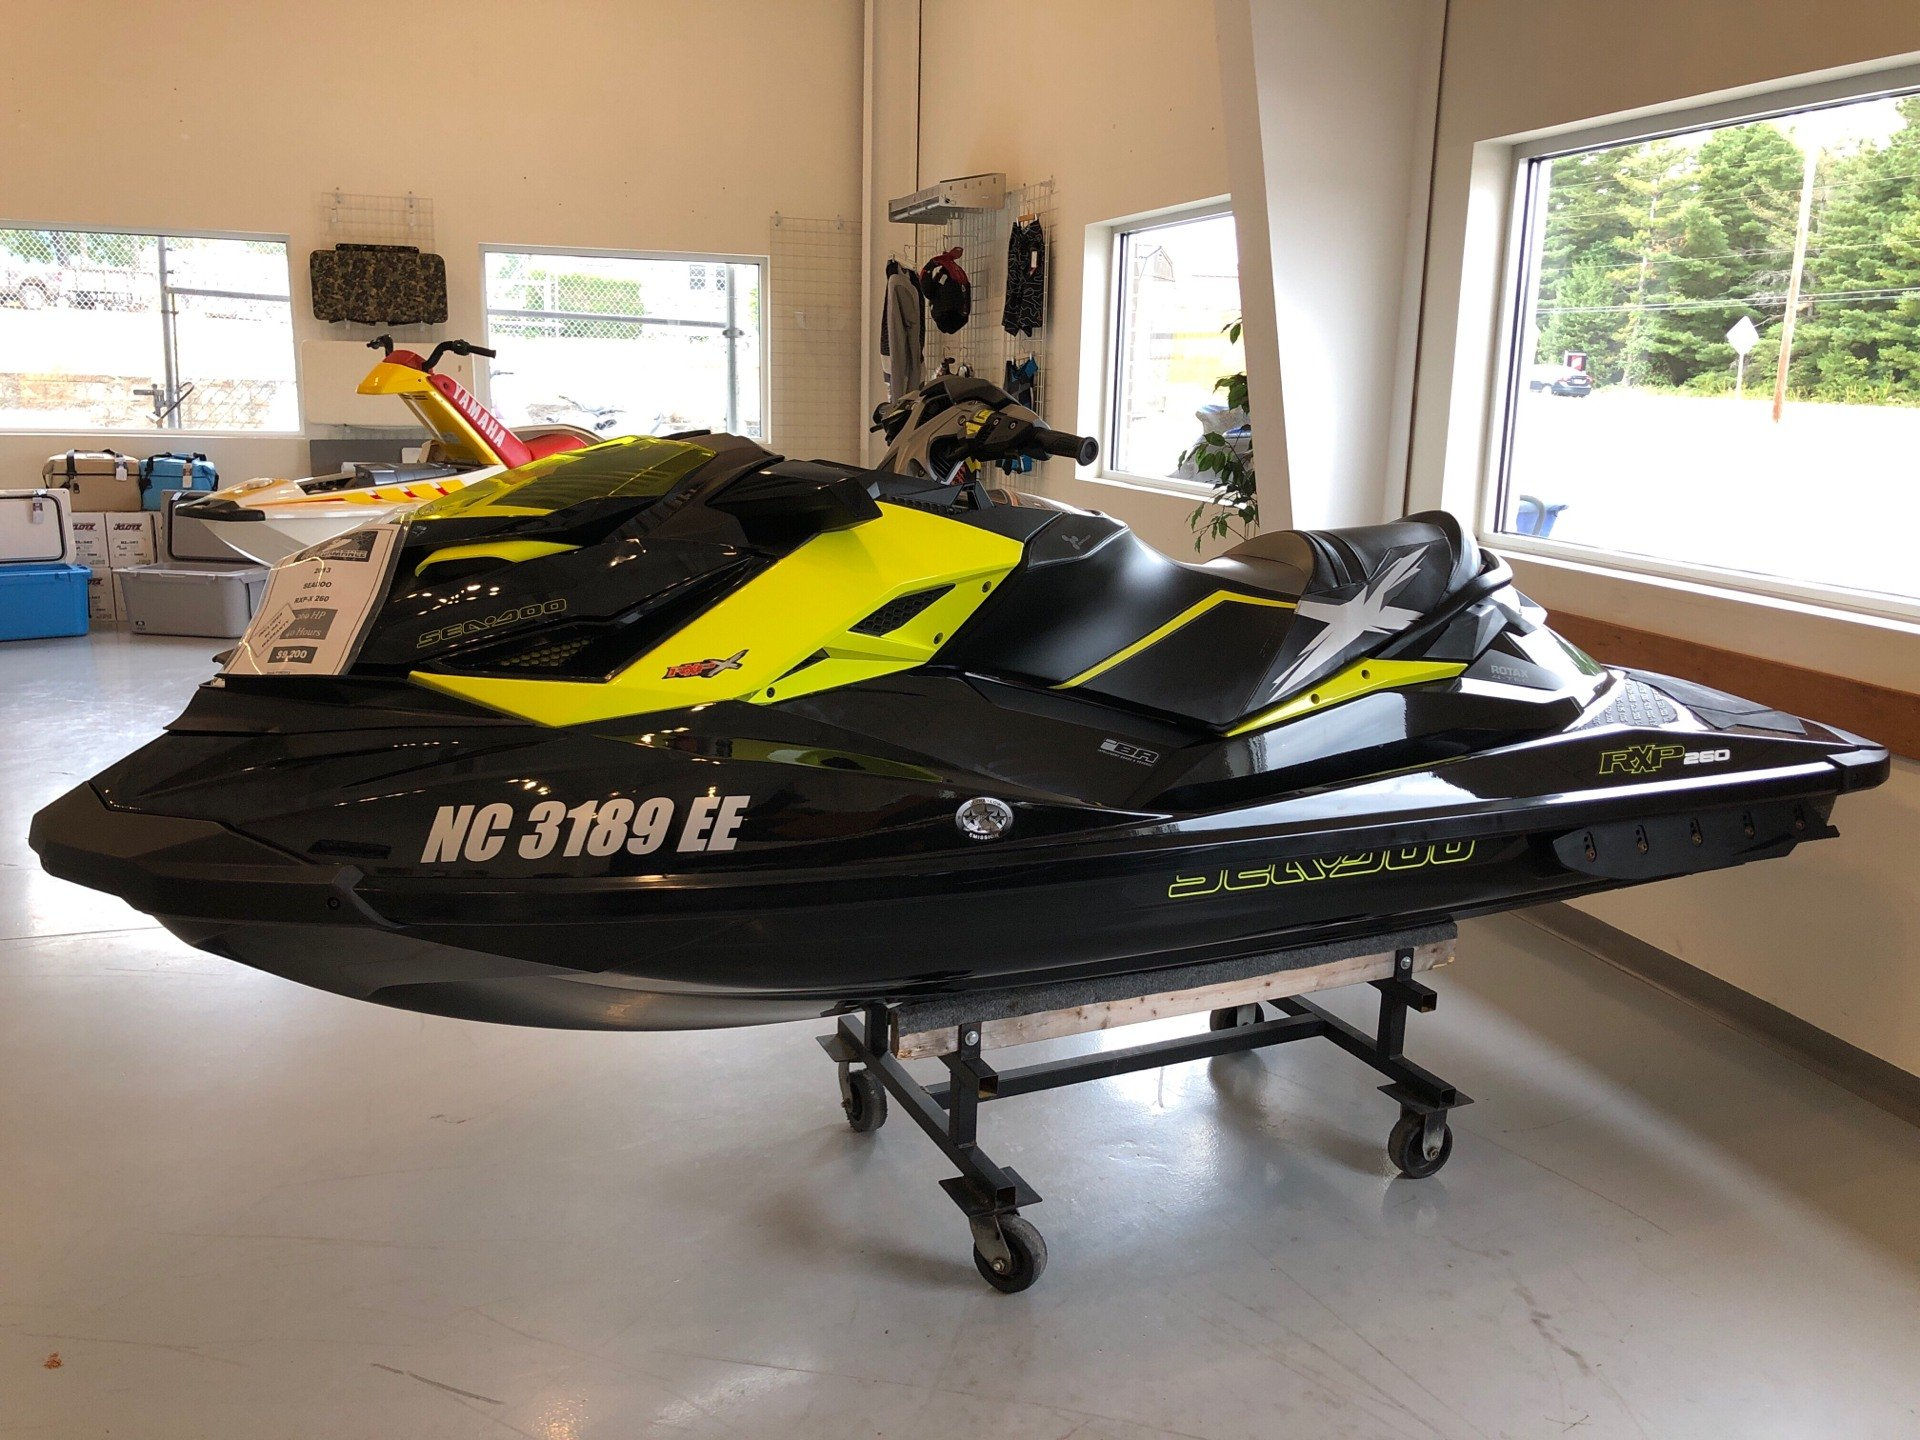 2013 Sea-Doo RXP®-X® 260 in Mooresville, North Carolina - Photo 2